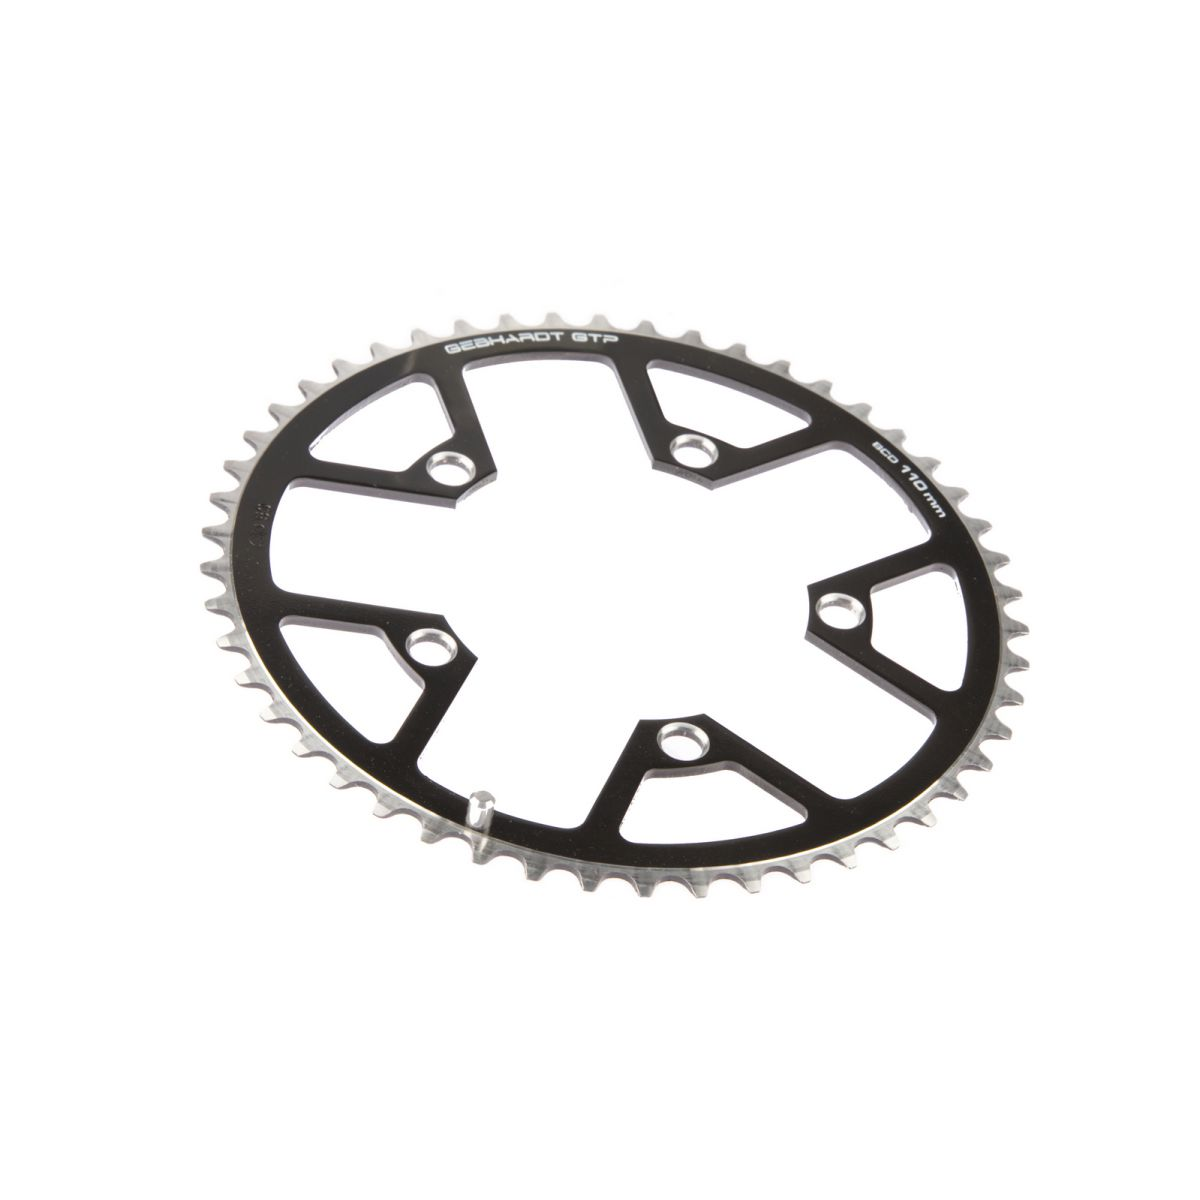 gebhardt chainring classic bcd 110 mm 5hole 44t black